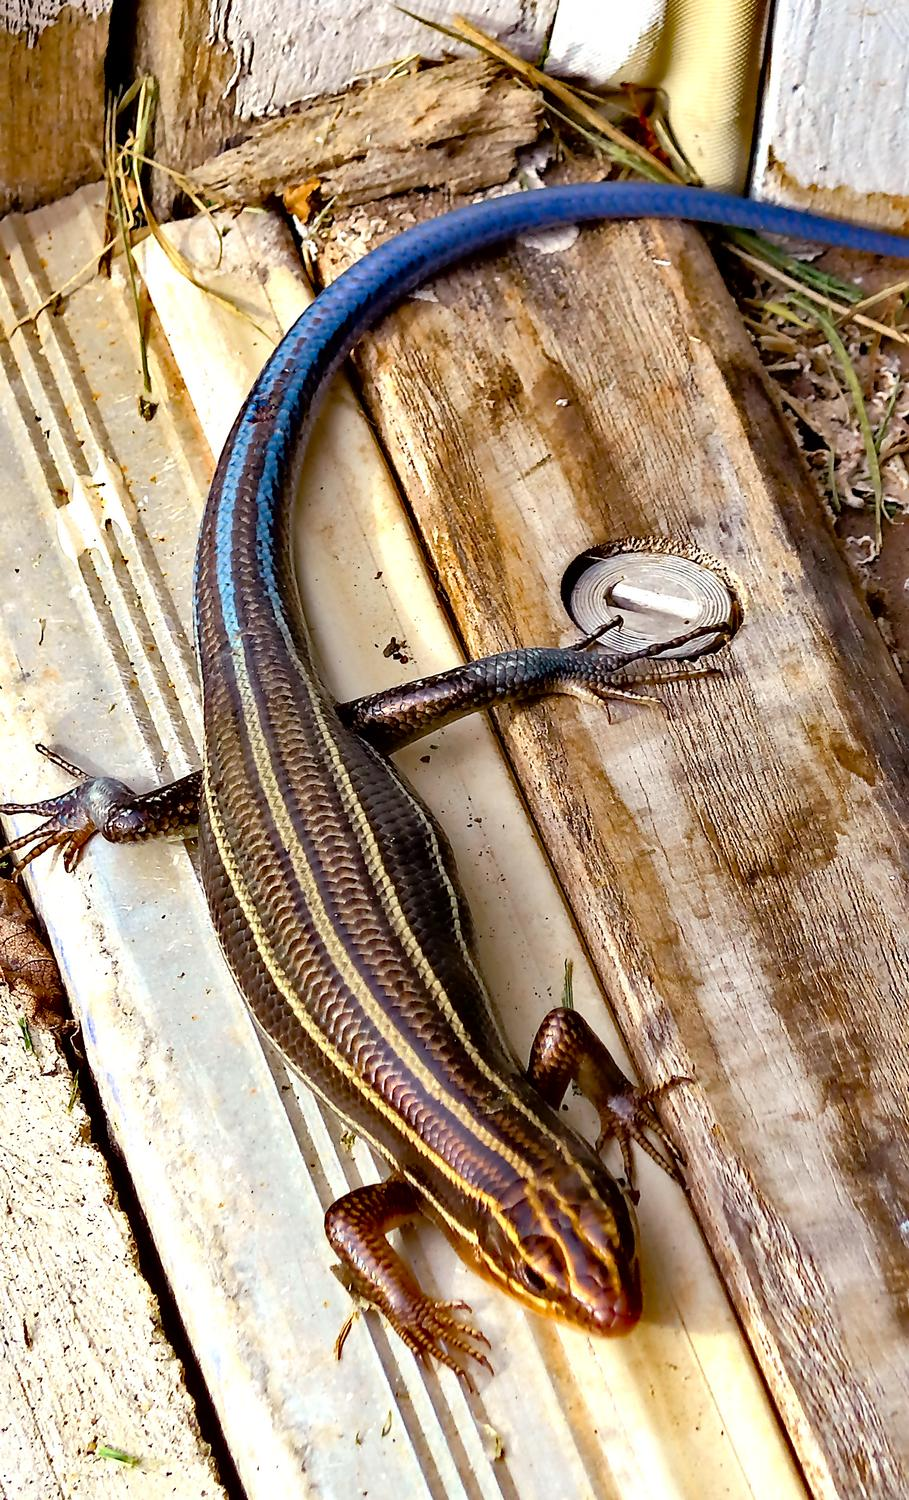 Panasonic DMC-LF1 - A skink by the garage. This one has a blue tail,<br> meaning it's still in its youth. - Leica C (typ 112) - Panasonic DMC-LF1 - five-lined skink - - Tony Karp, design, art, photography, techno-impressionist, techno-impressionism, aerial photography , drone , drones , dji , mavic pro , video , 3D printing - Books -